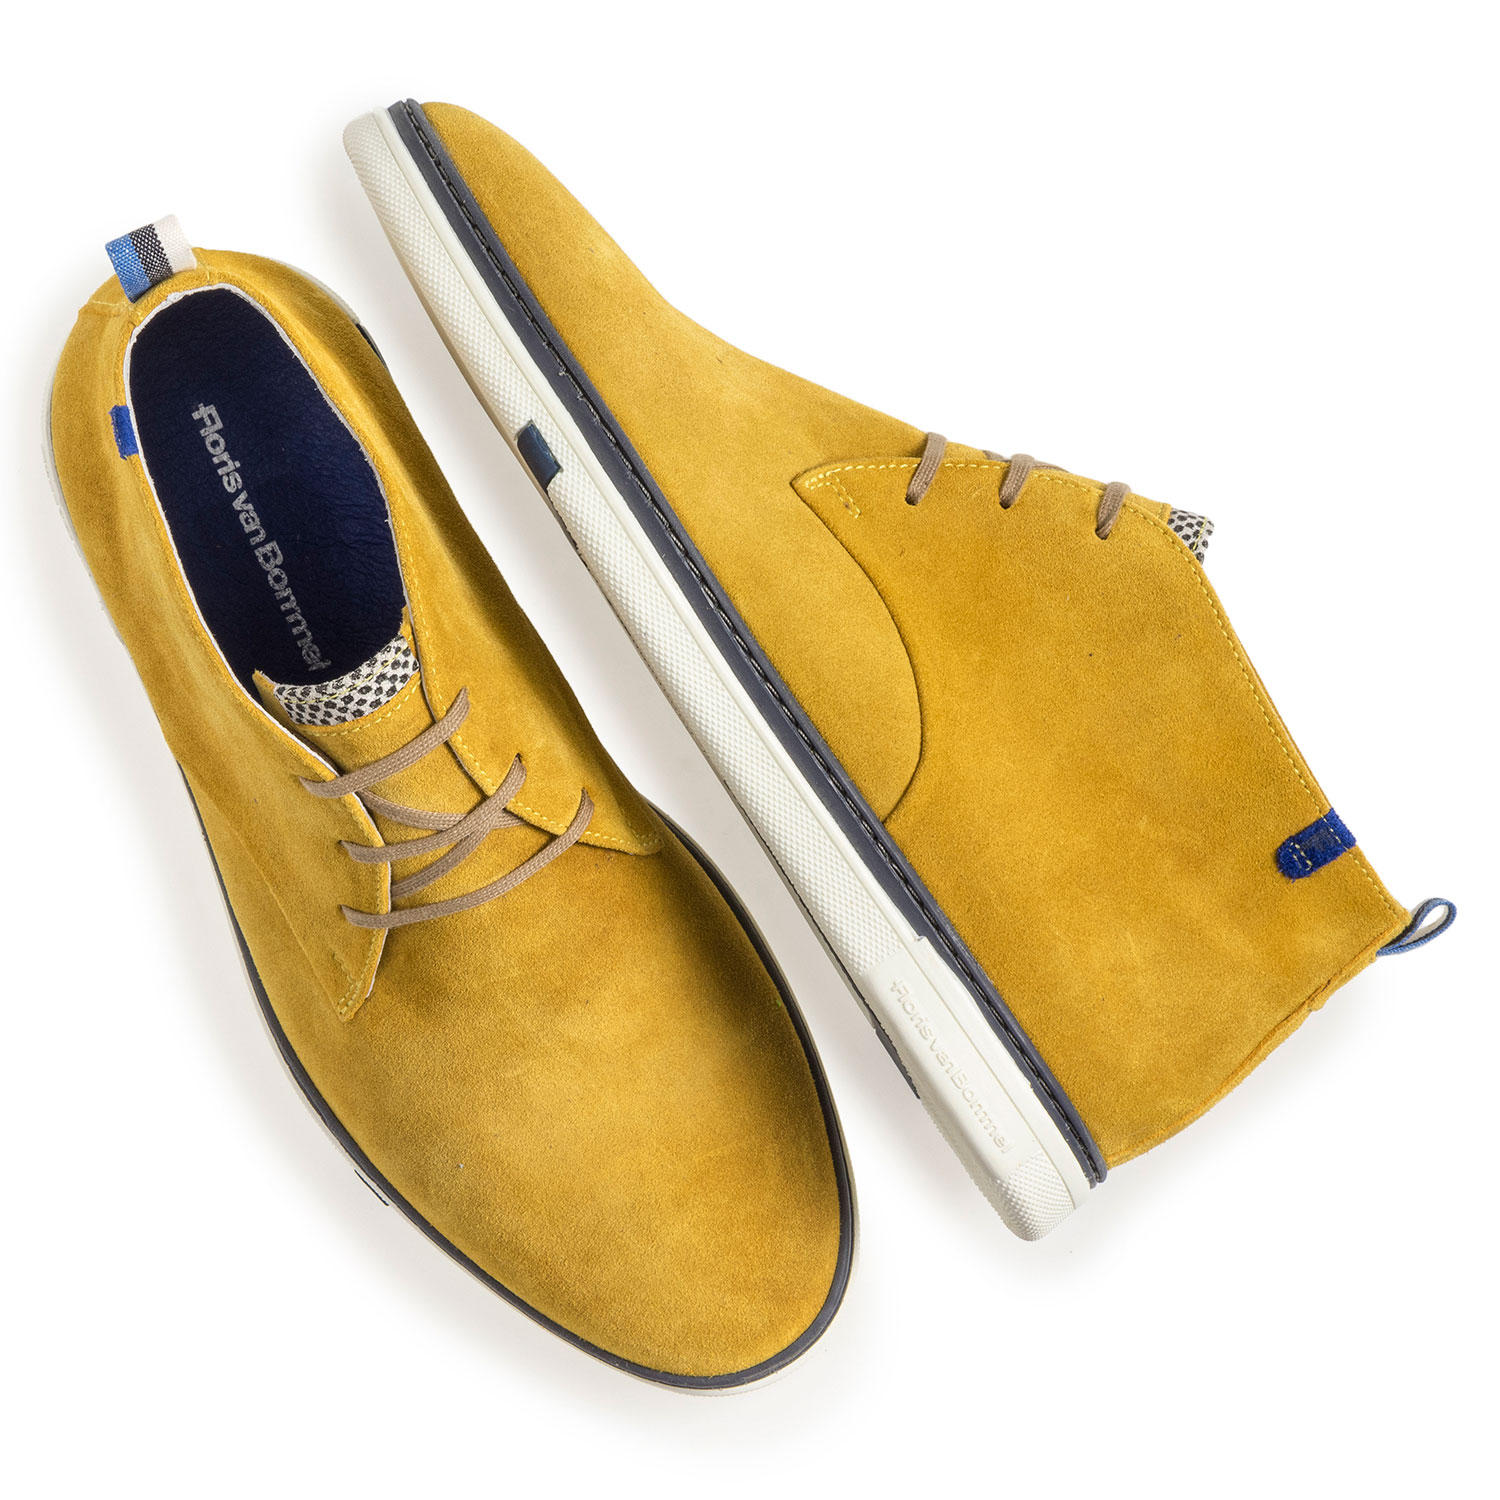 10502/12 - Yellow suede leather lace boot